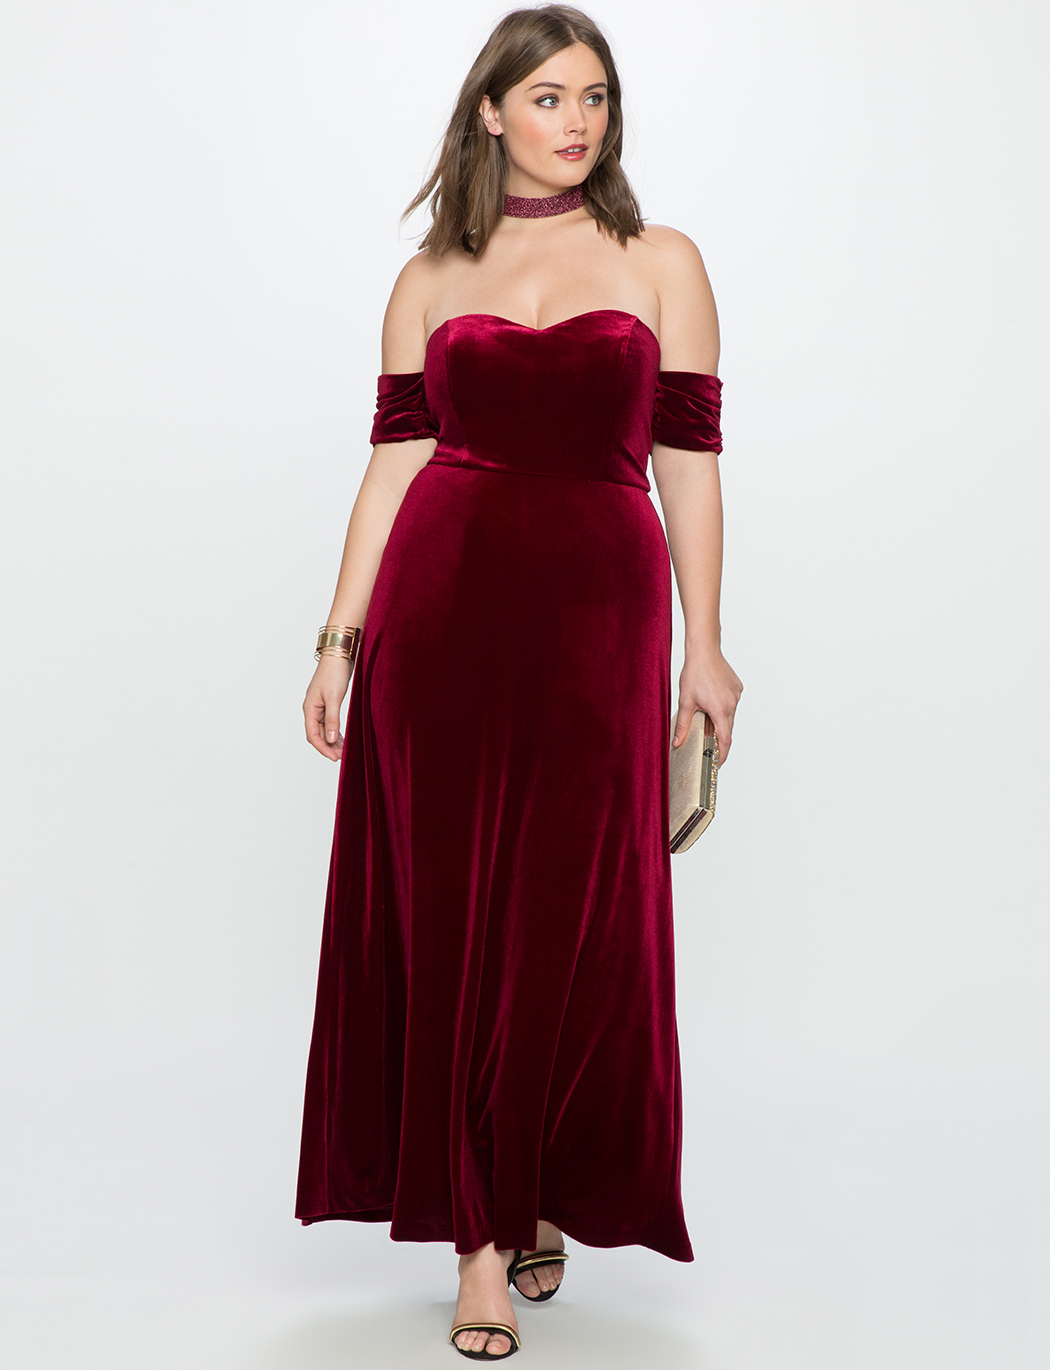 How To Wear The Velvet Trend In Plus Size Stylish Curves